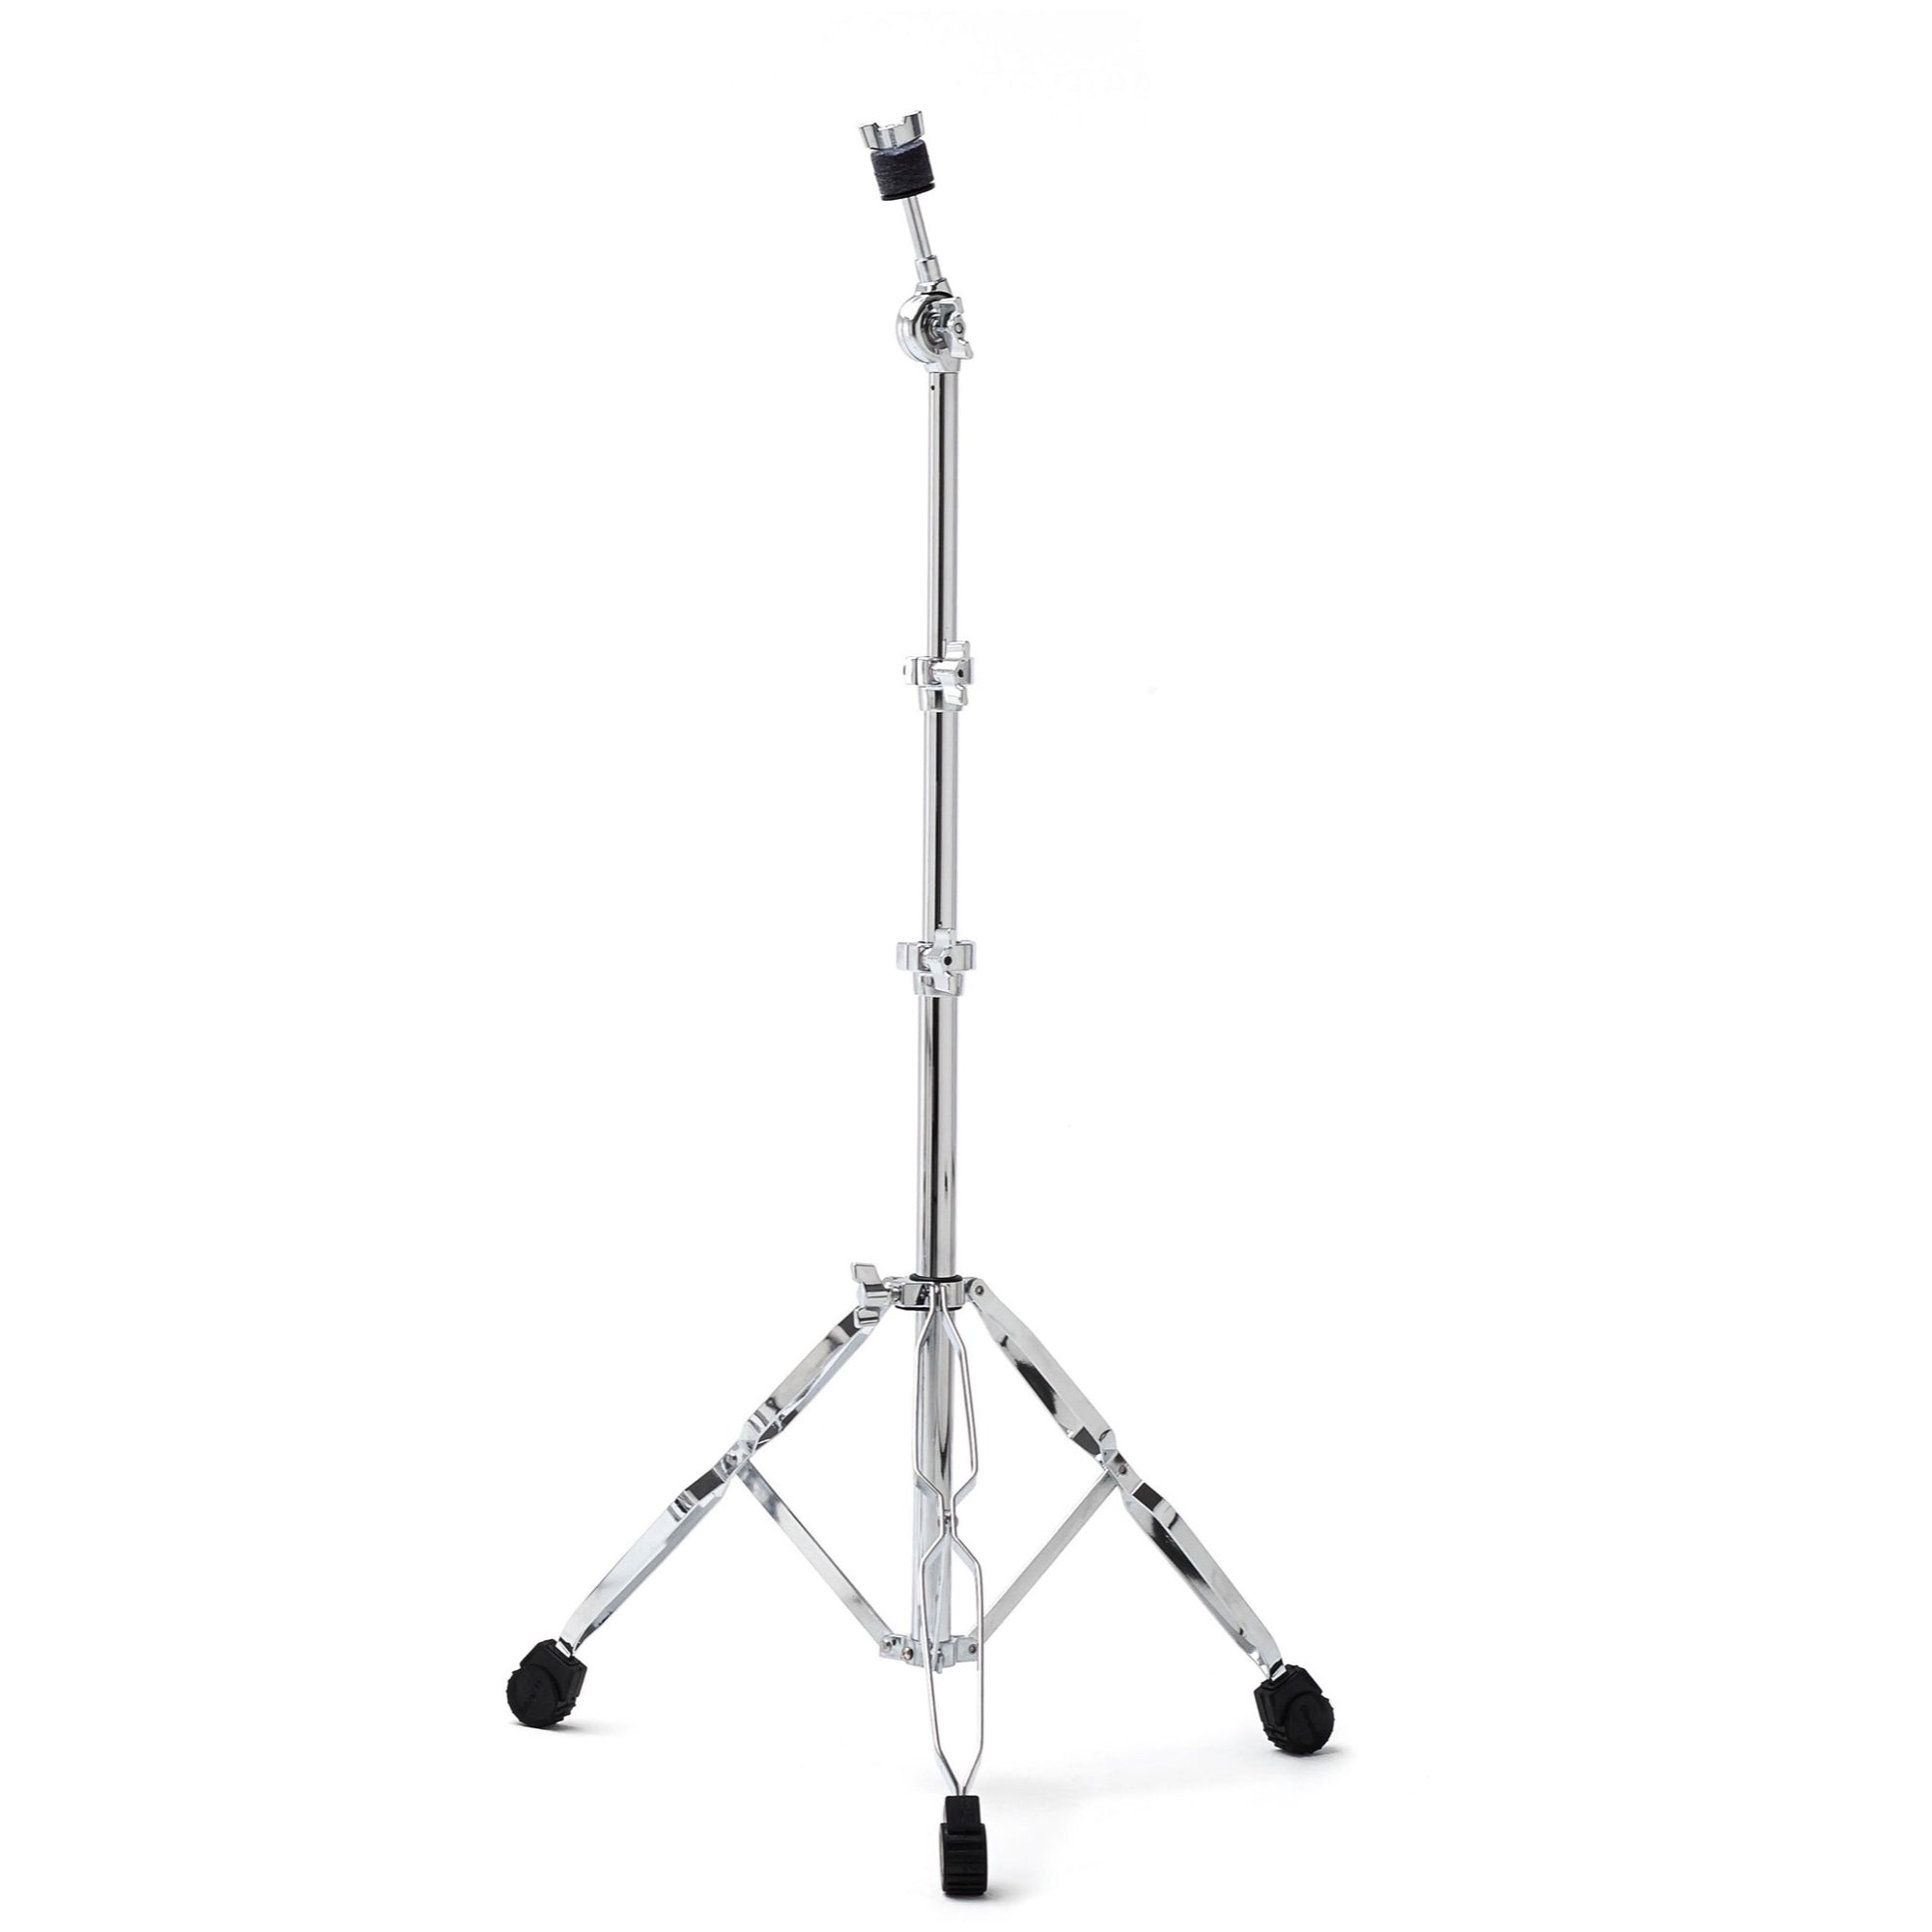 Gibraltar 5710 Medium-Duty Double-Braced Cymbal Stand